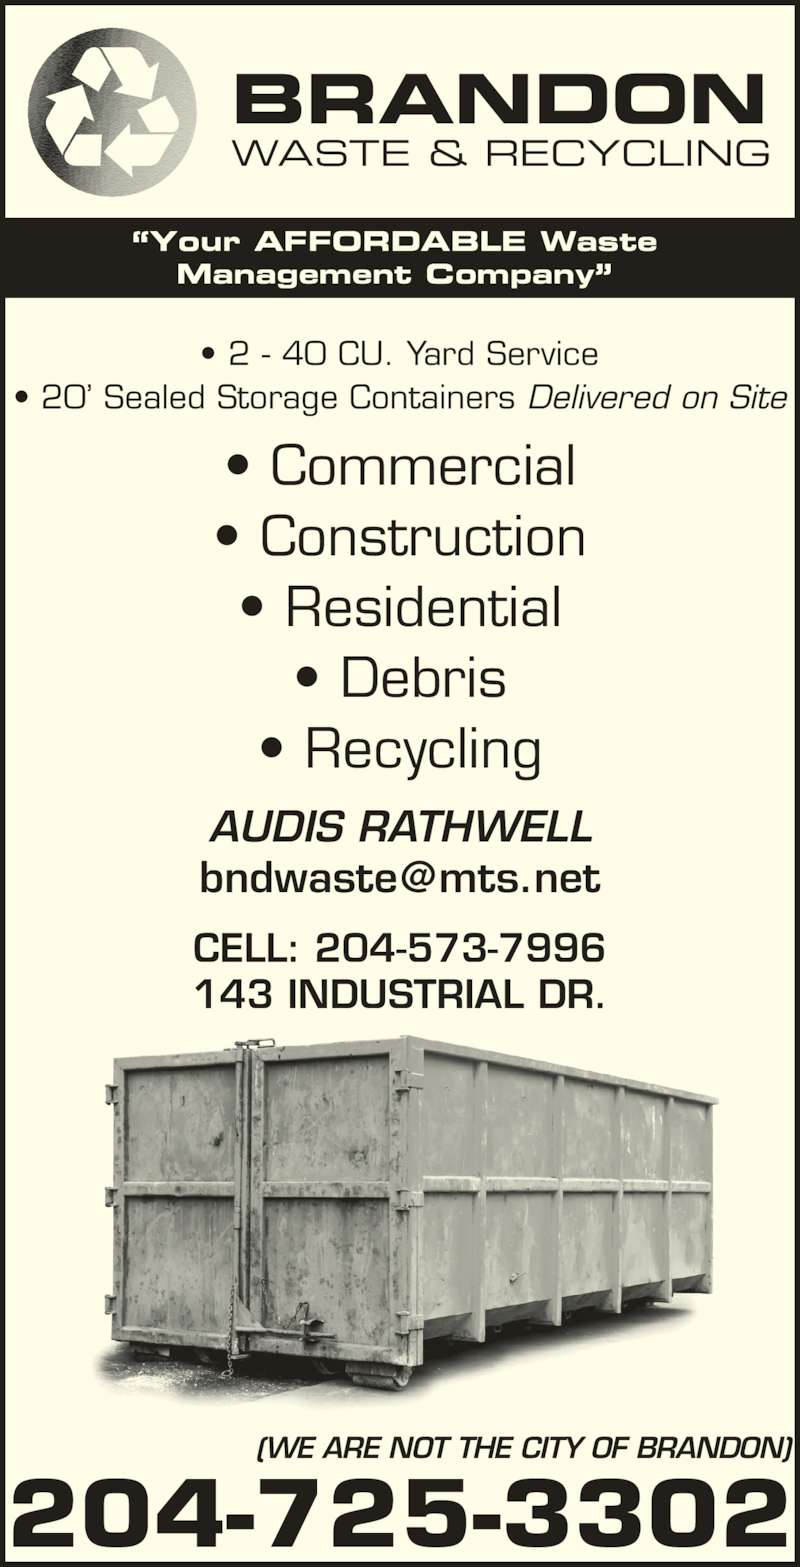 Brandon Waste & Recycling (204-725-3302) - Display Ad - ?Your AFFORDABLE Waste Management Company? (WE ARE NOT THE CITY OF BRANDON) 204-725-3302 CELL: 204-573-7996 143 INDUSTRIAL DR. ? Commercial ? Construction ? Residential ? Debris ? Recycling ? 2 - 40 CU. Yard Service ? 20? Sealed Storage Containers Delivered on Site AUDIS RATHWELL BRANDON WASTE & RECYCLING